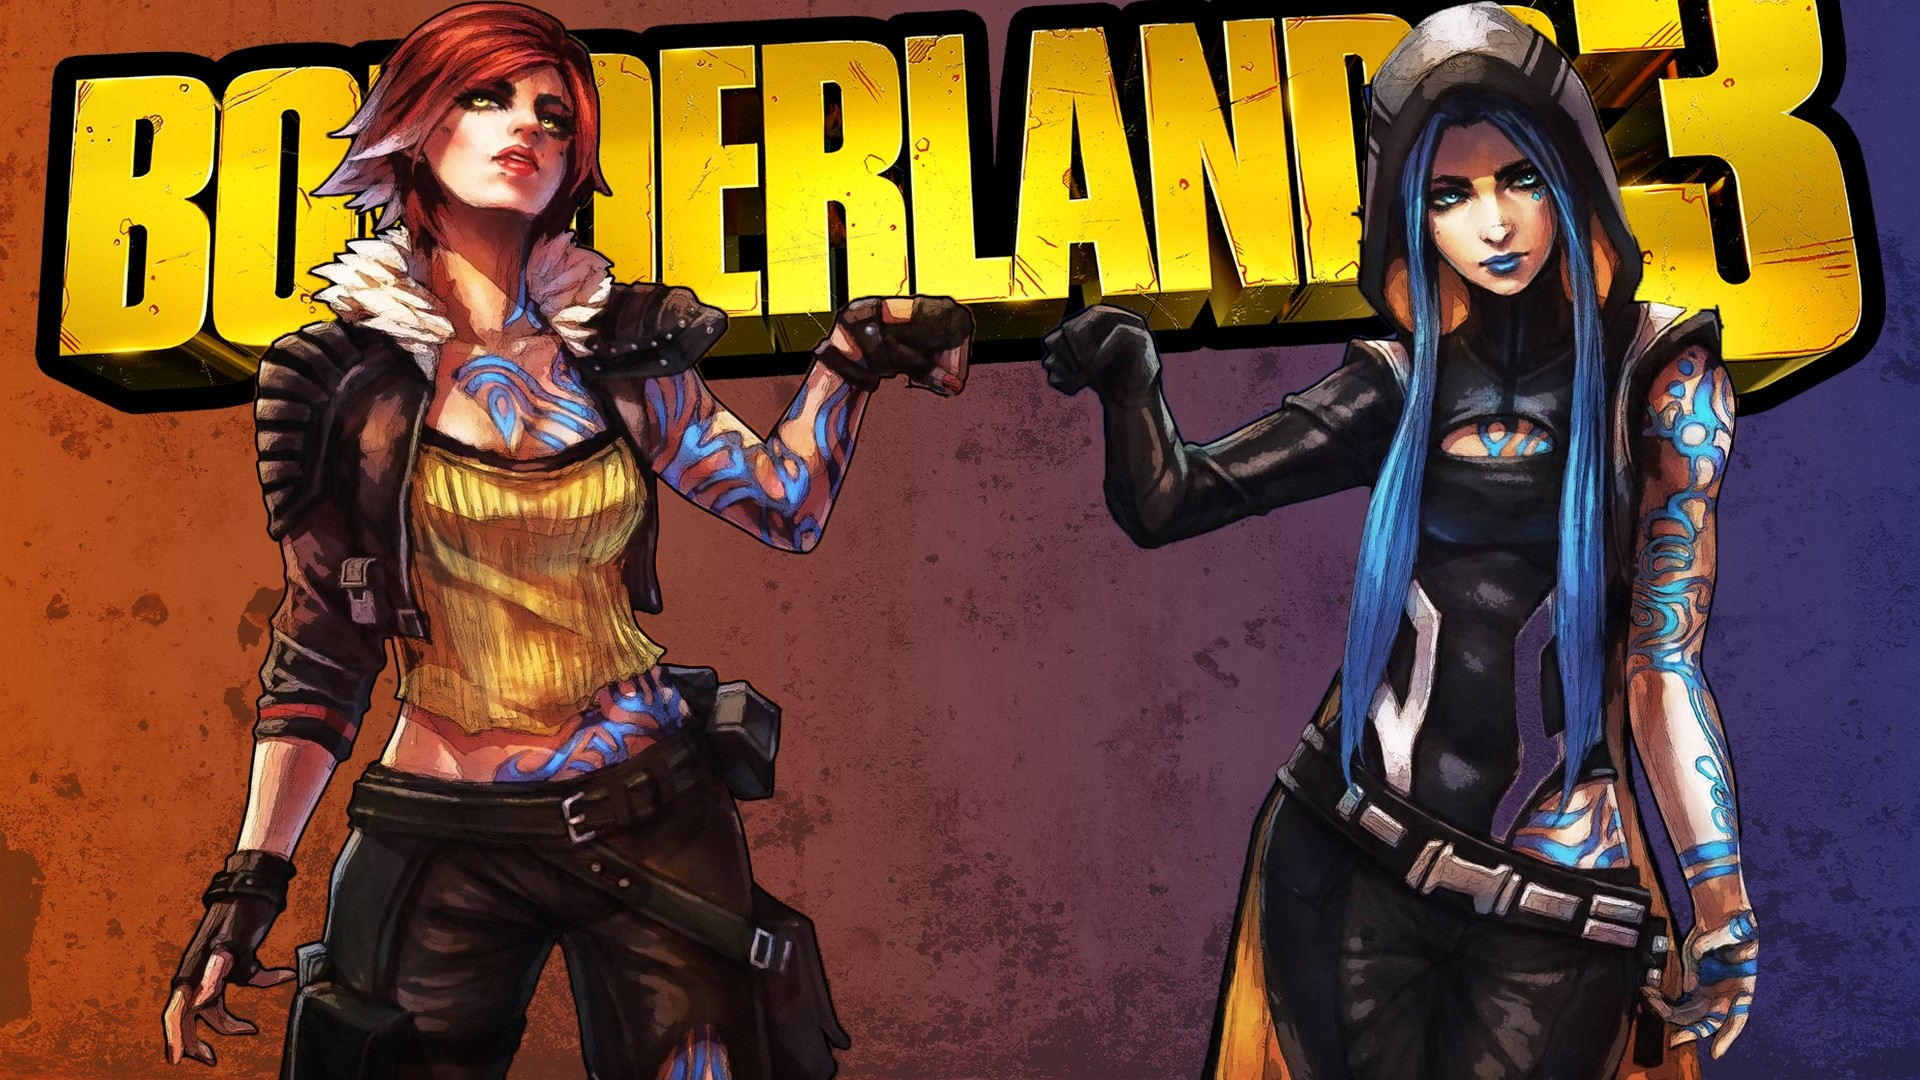 Borderlands 3 Wallpaper and Background